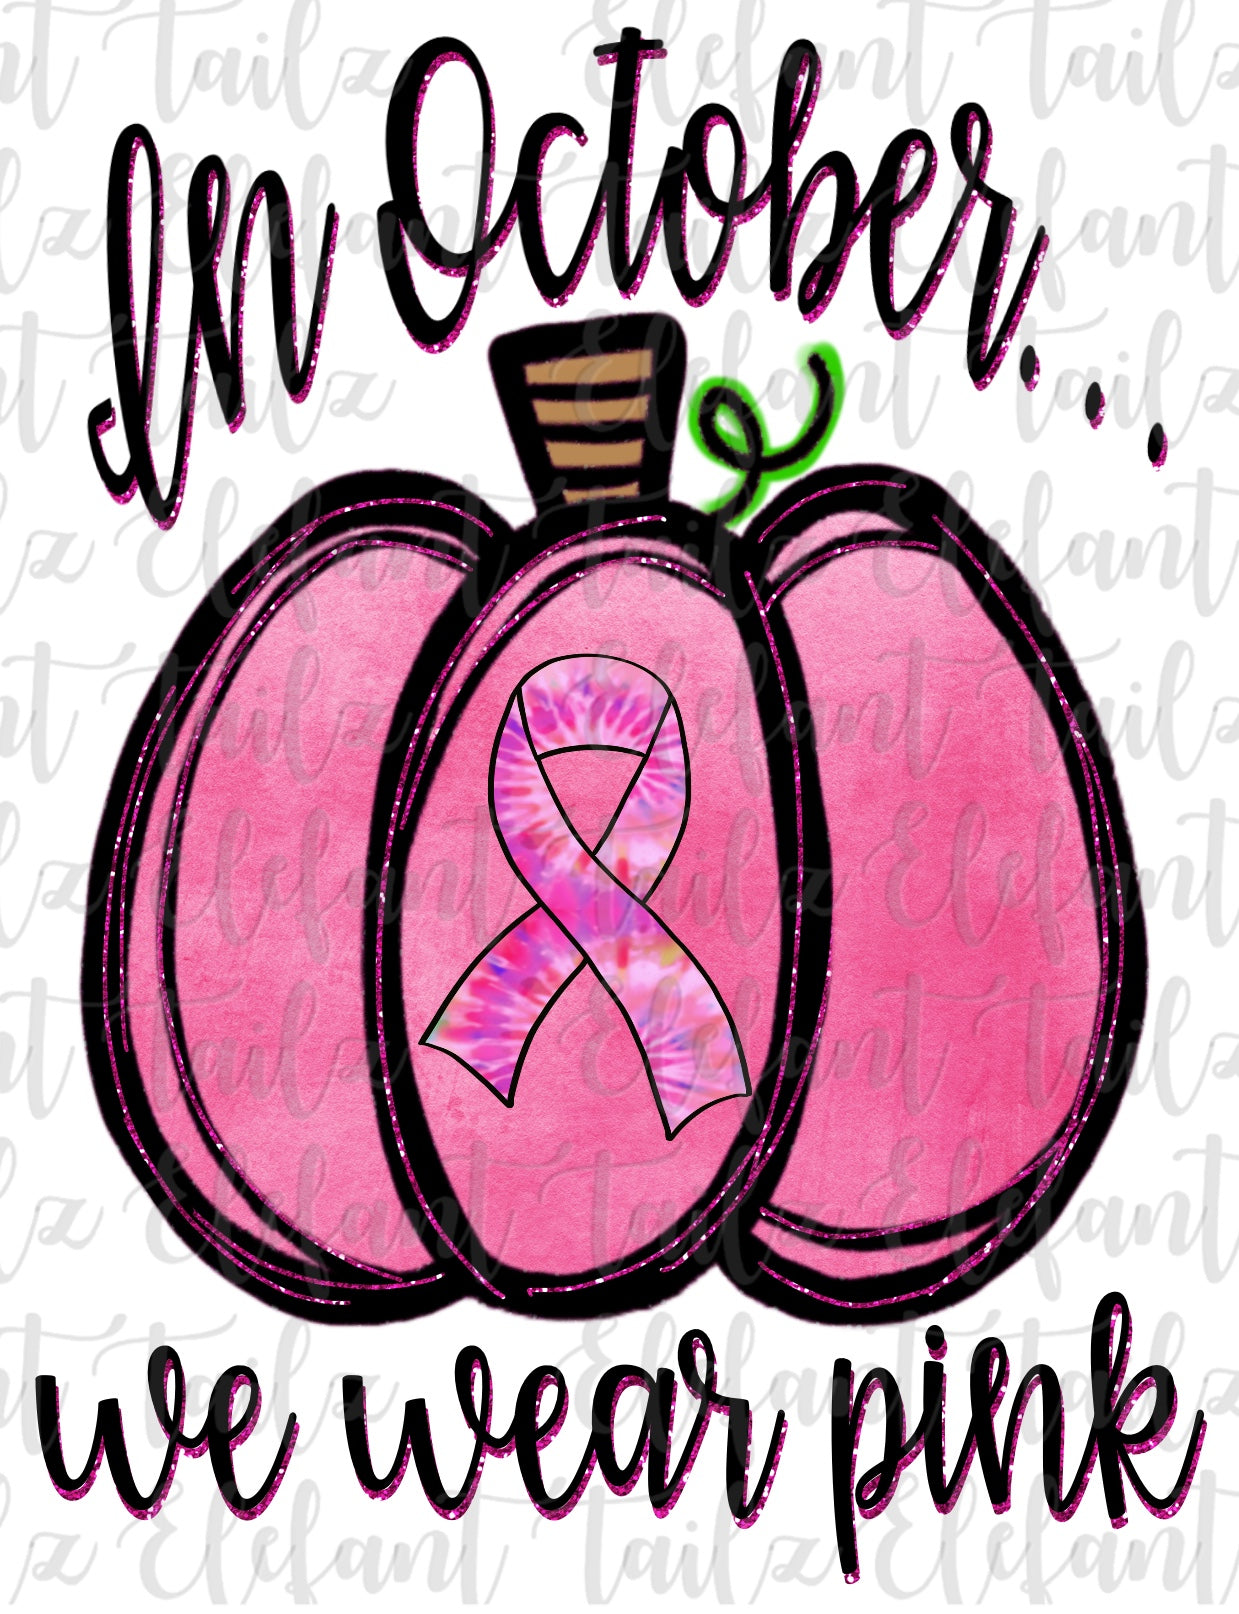 October Wear Pink Tie Dye Ribbon Pumpkin